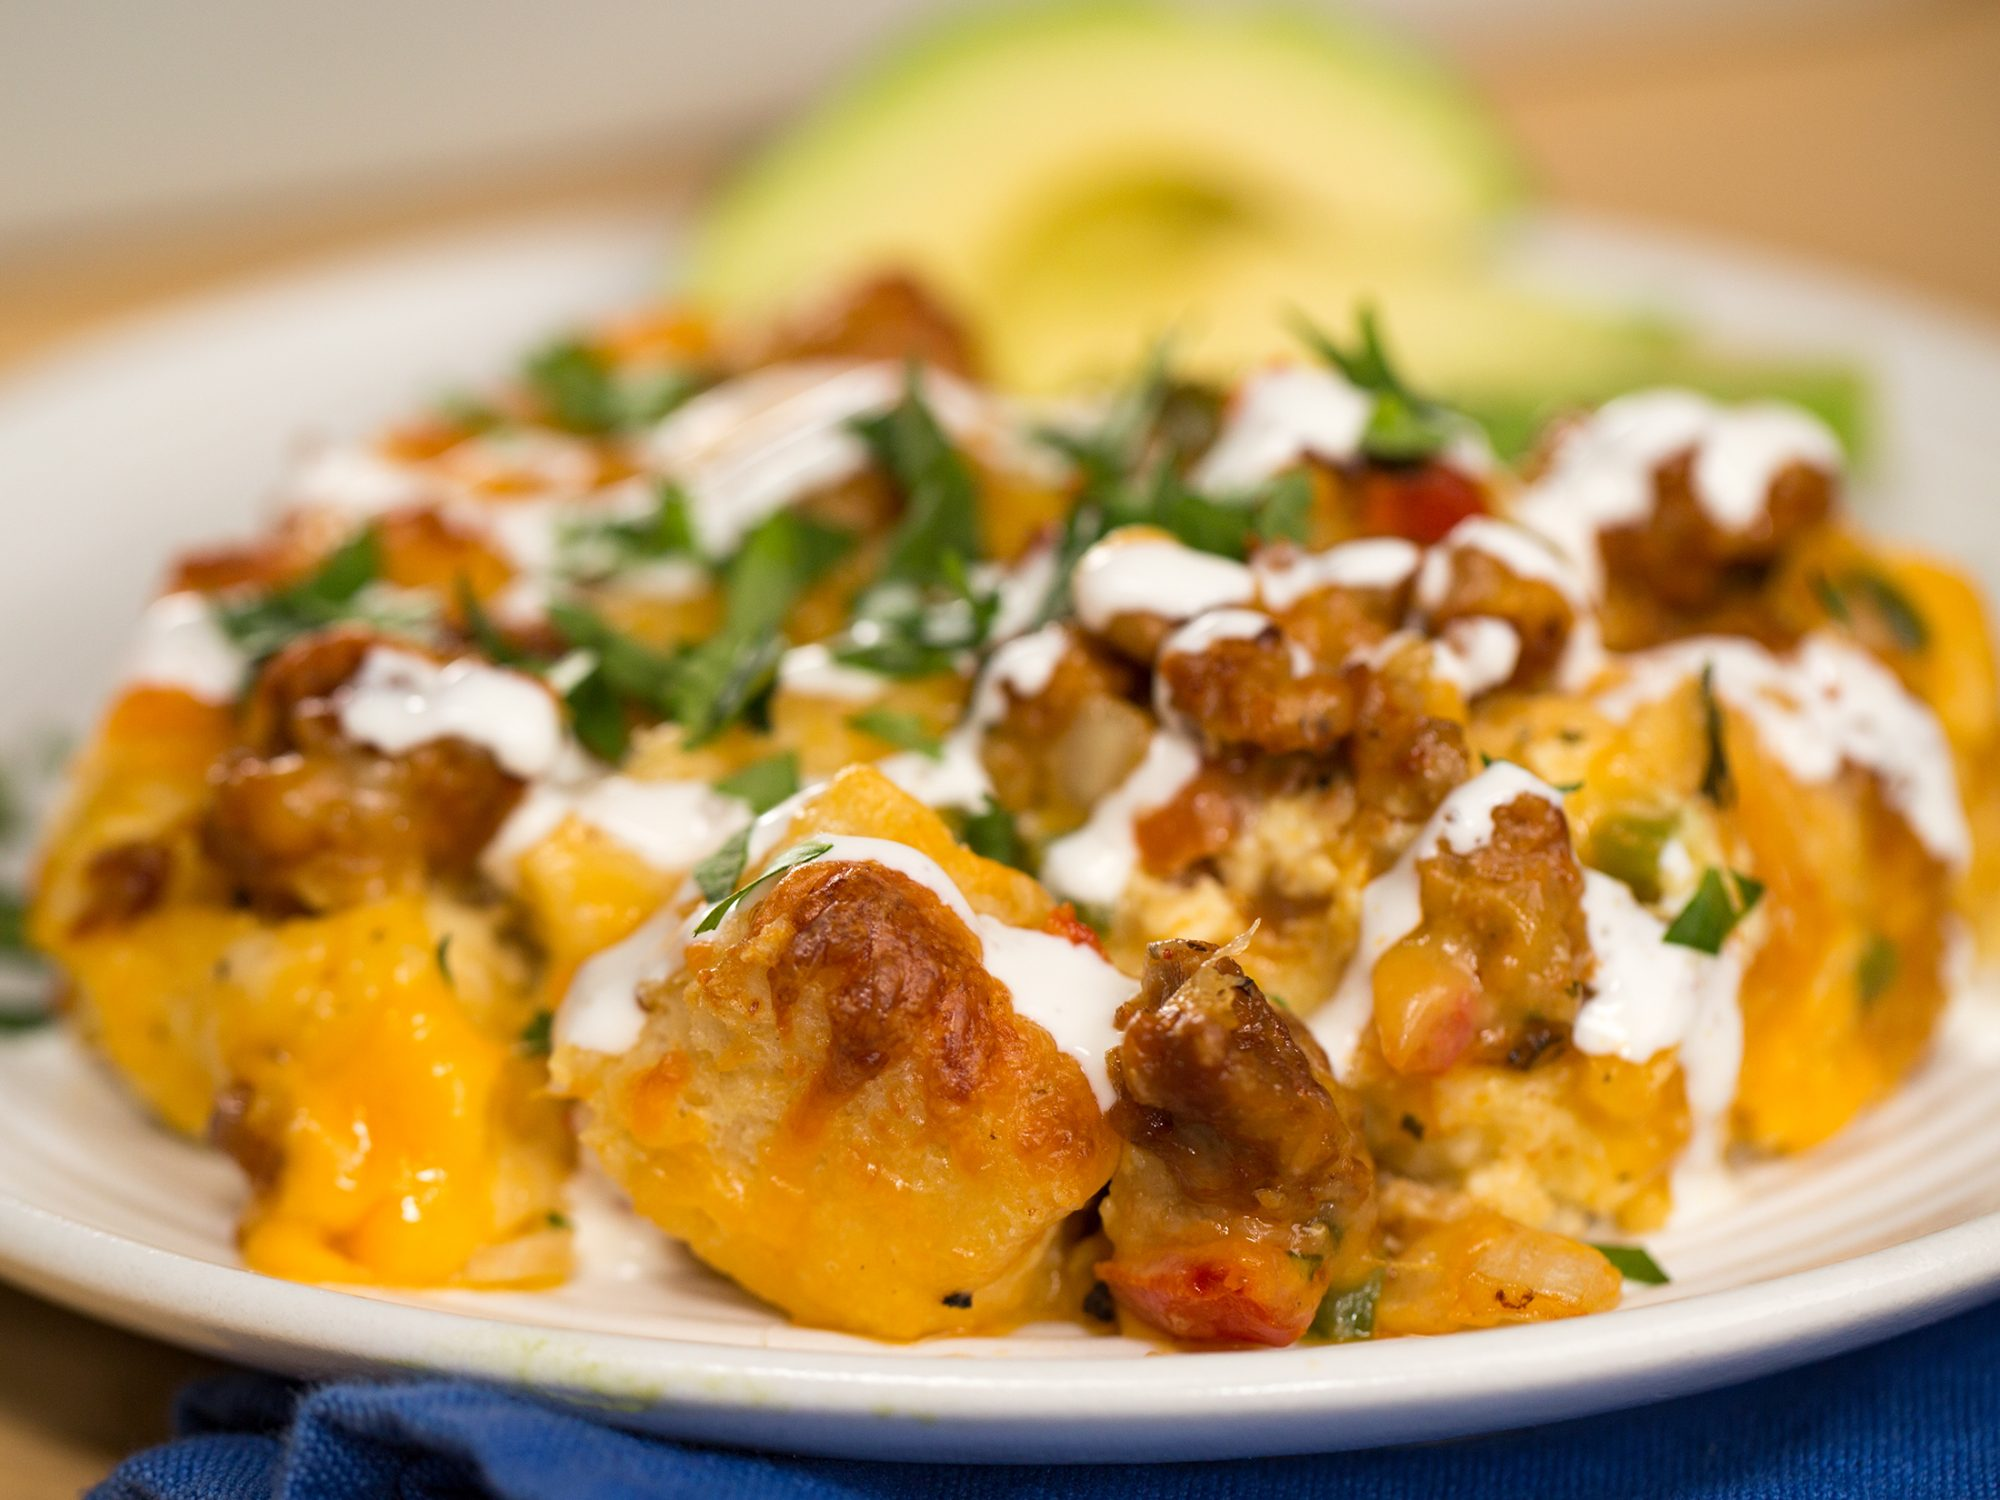 Tex-Mex Breakfast Bake image